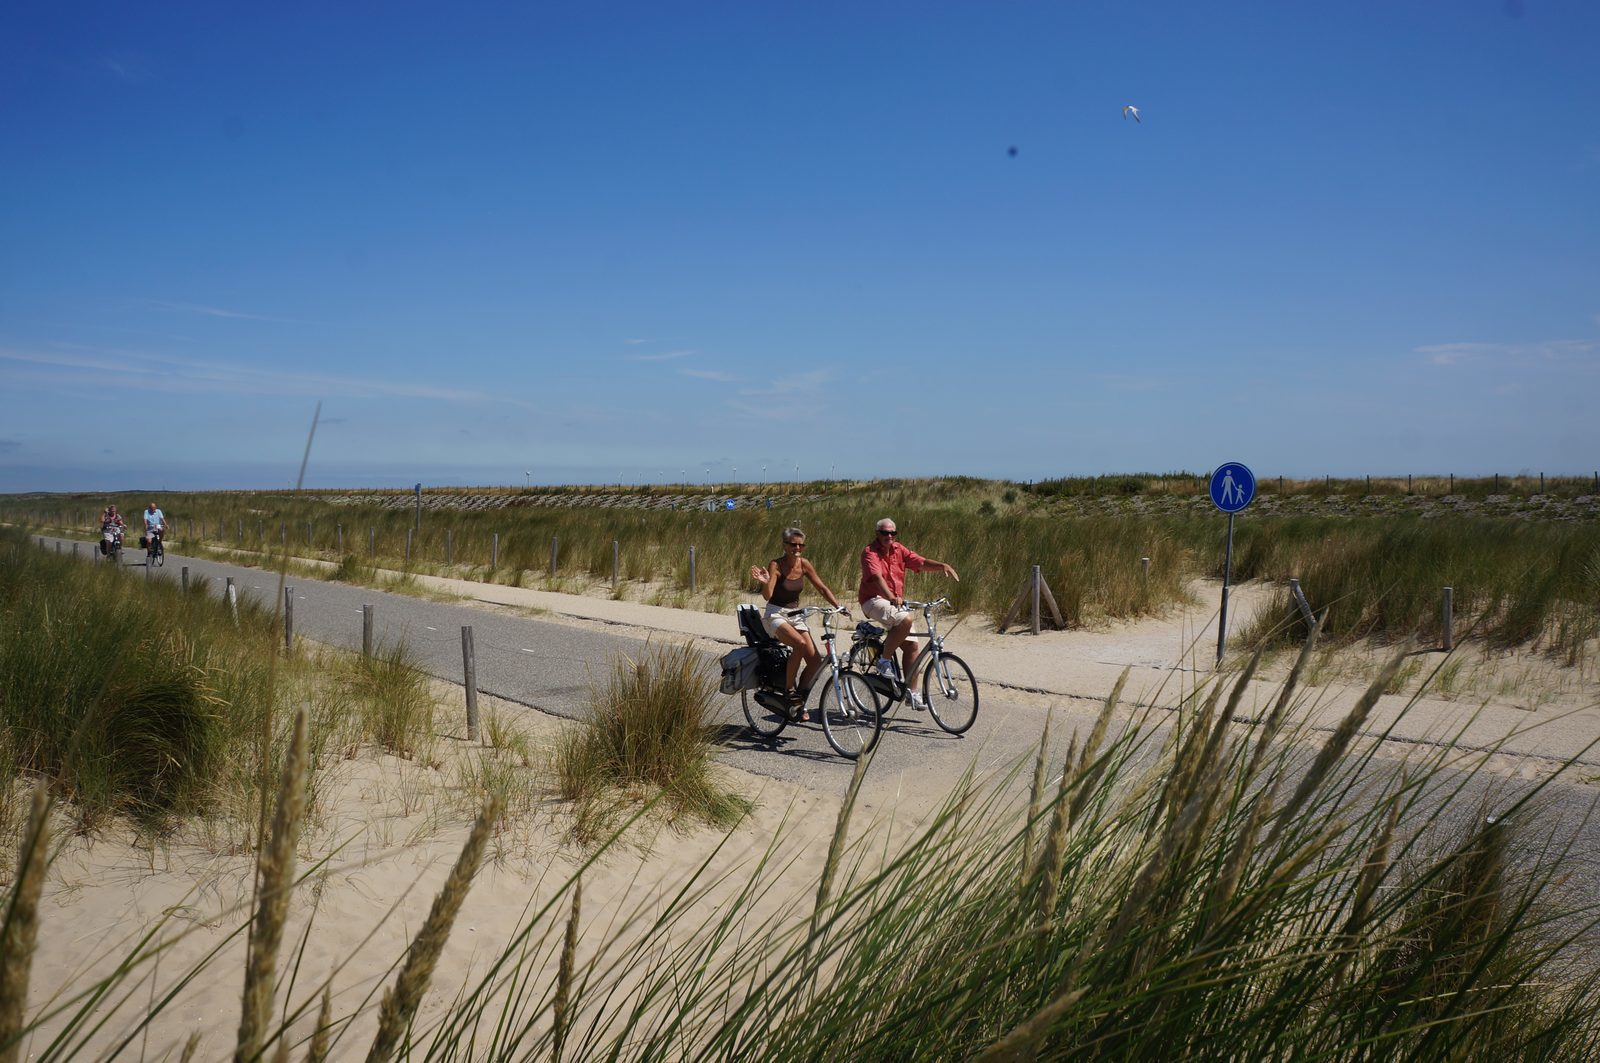 Cycling at the dunes